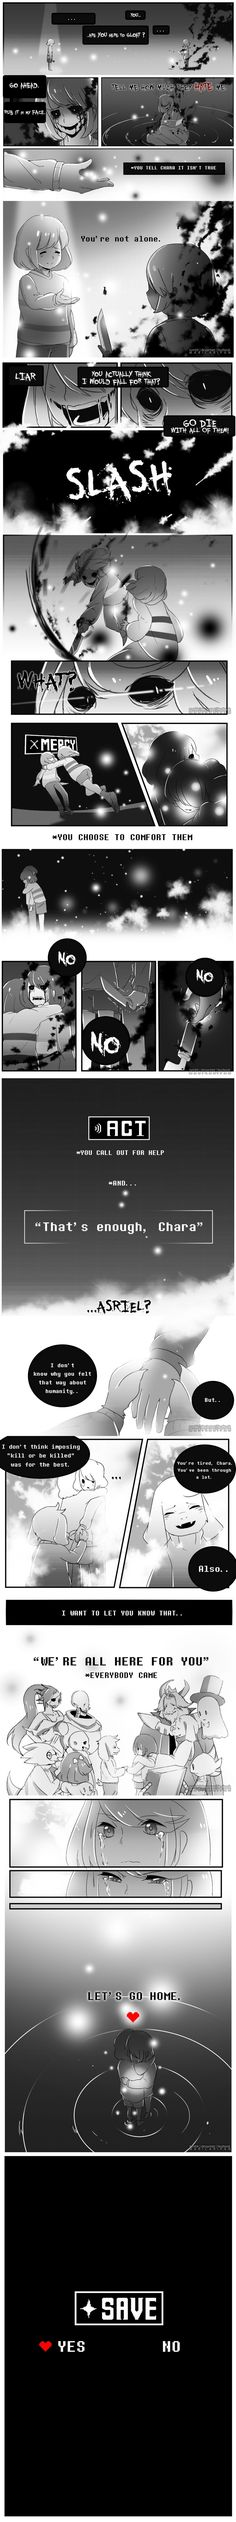 Undertale Comic : SAVE CHARA by maricaripan.deviantart.com on @DeviantArt